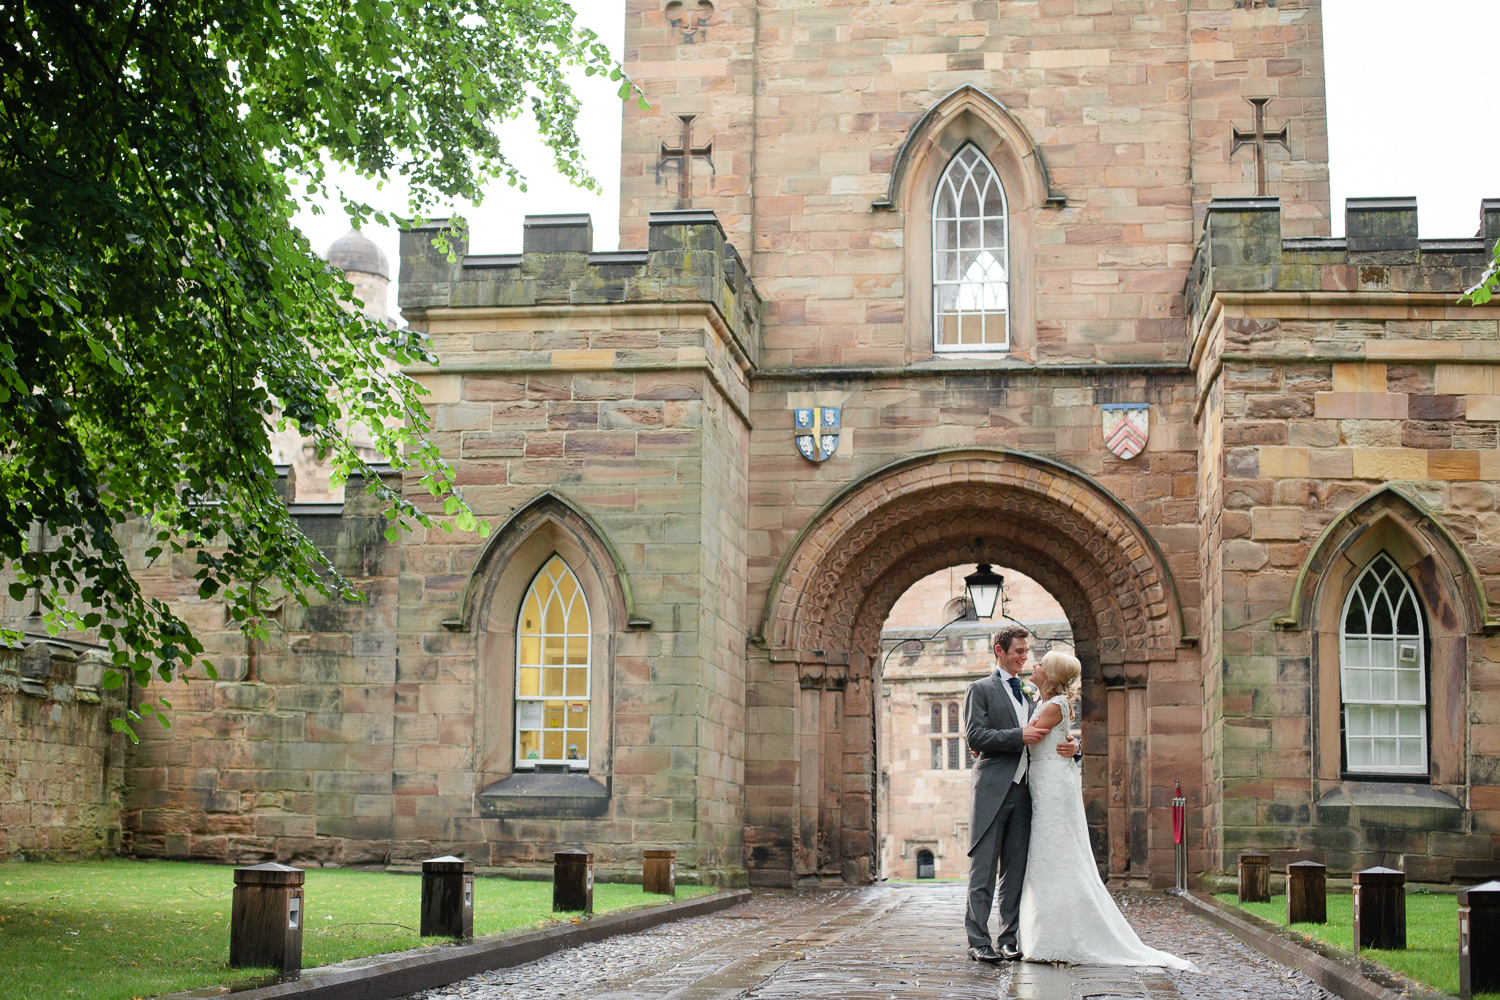 Emma & Nick's Wedding at Durham Castle